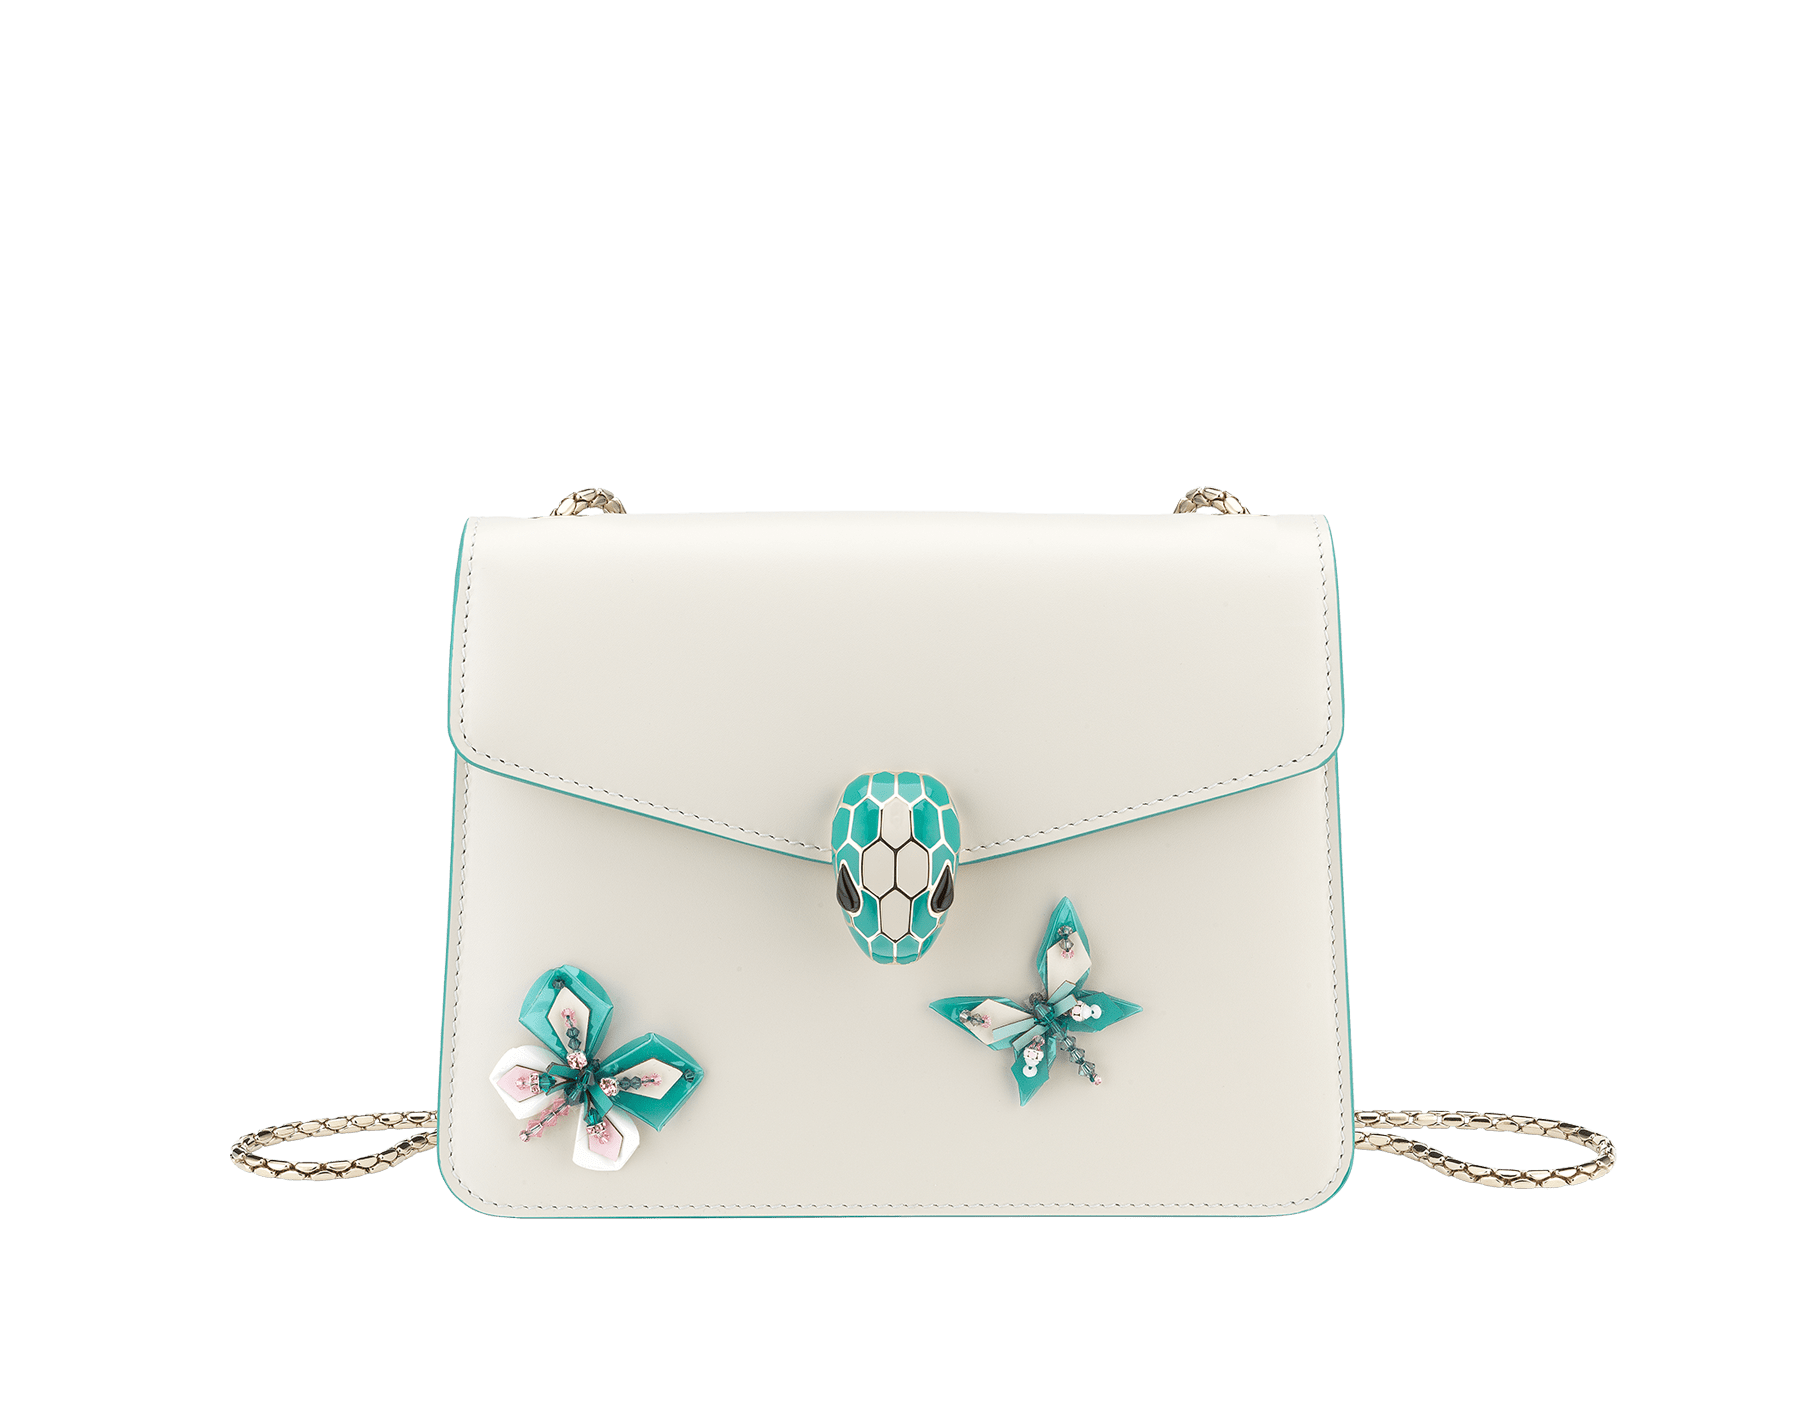 """Serpenti Forever"" crossbody bag in white agate calf leather with two arctic jade butterflies embroidered. Iconic snakehead closure in light gold plated brass enriched with arctic jade and white agate enamel and black onyx eyes. 289247 image 1"